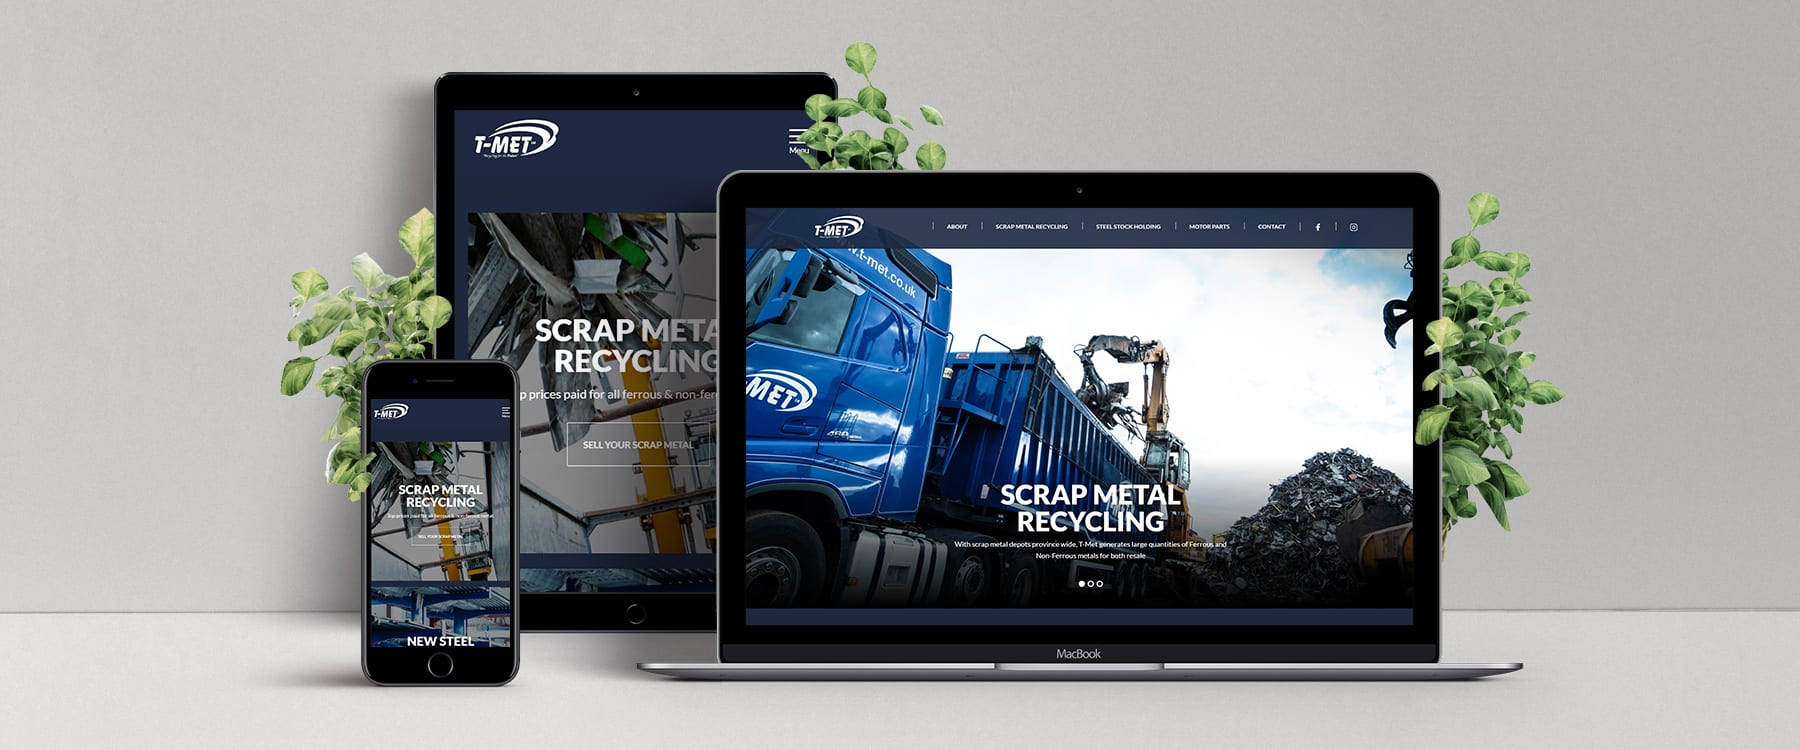 Northern Ireland's Leading Scrap Metal Recycling Company, T-Met Ltd, Unveil Redesigned Website Image